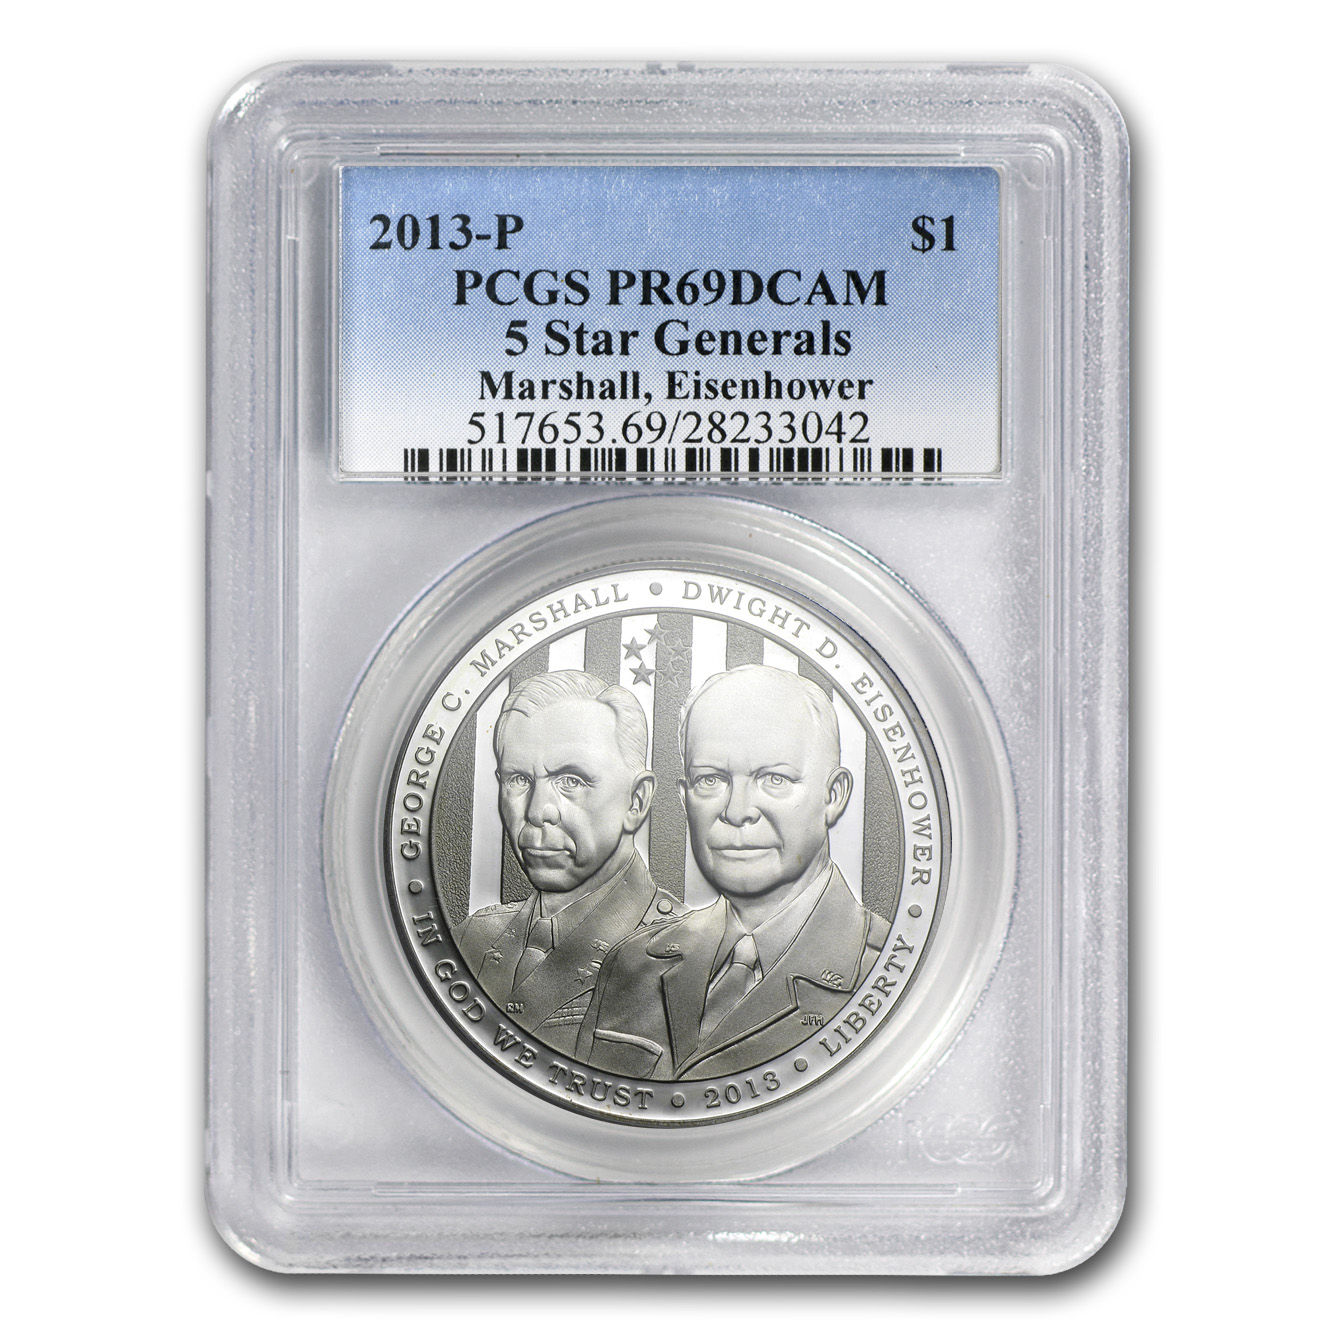 2013-P Five Star General $1 Silver Commem PR-69 PCGS